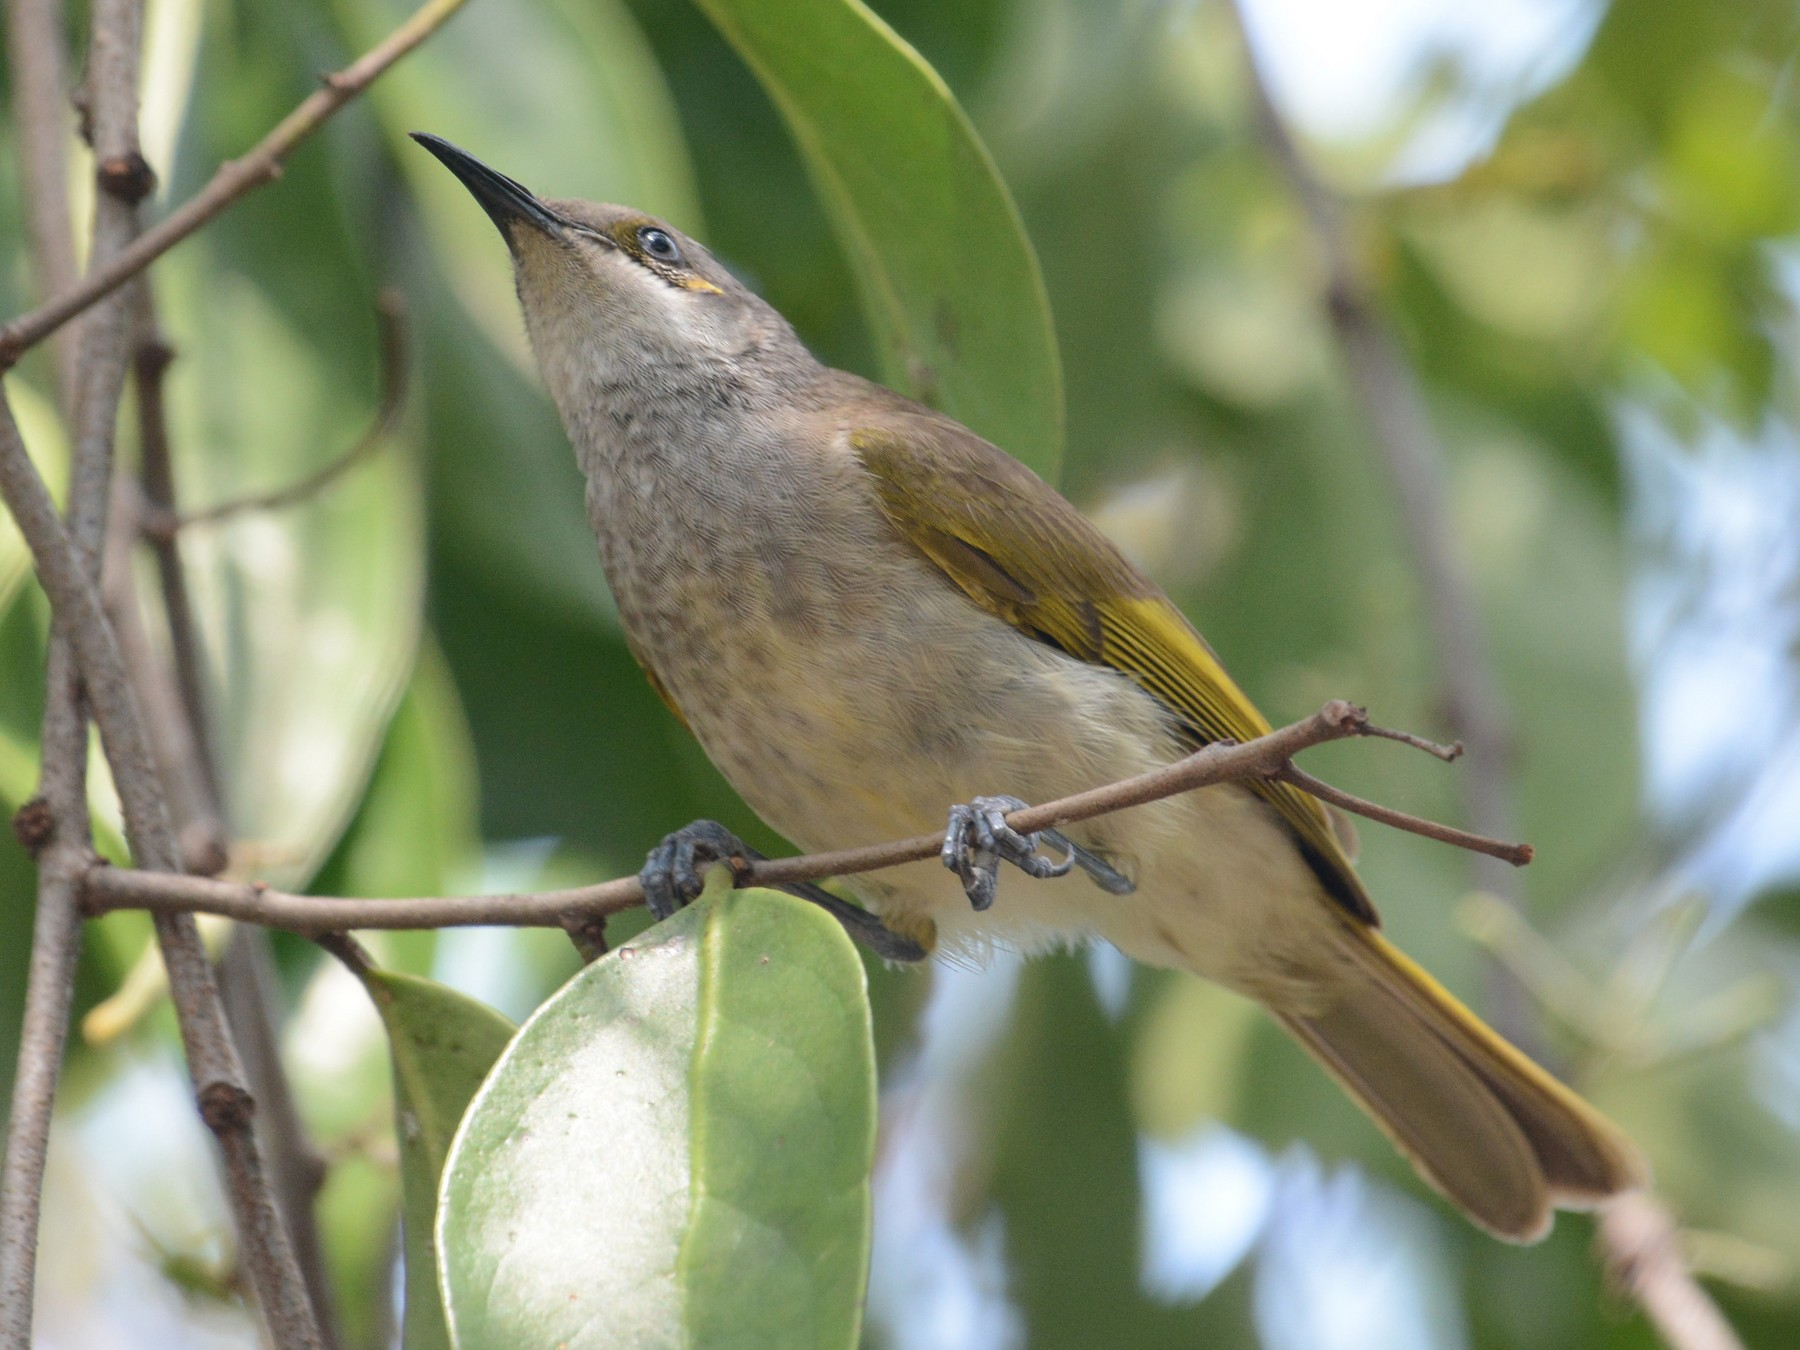 Indonesian Honeyeater - Ari Noviyono